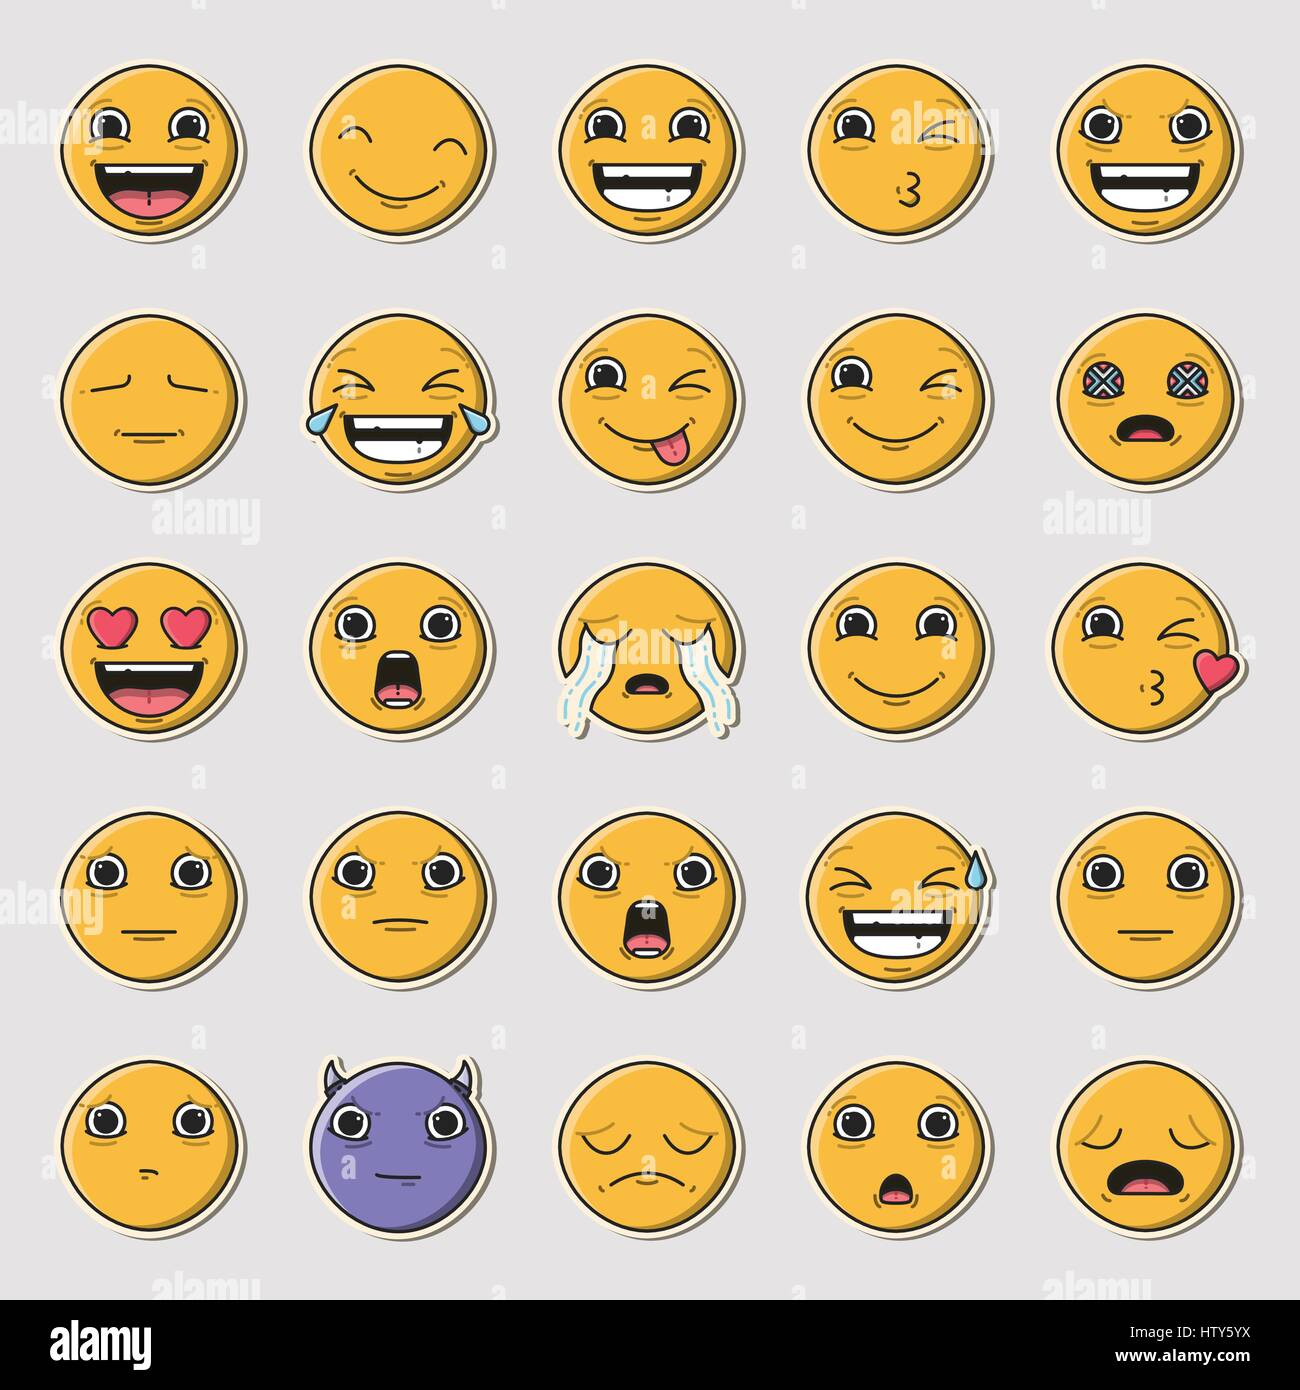 Vector icon set of emoticons against white background - Stock Image